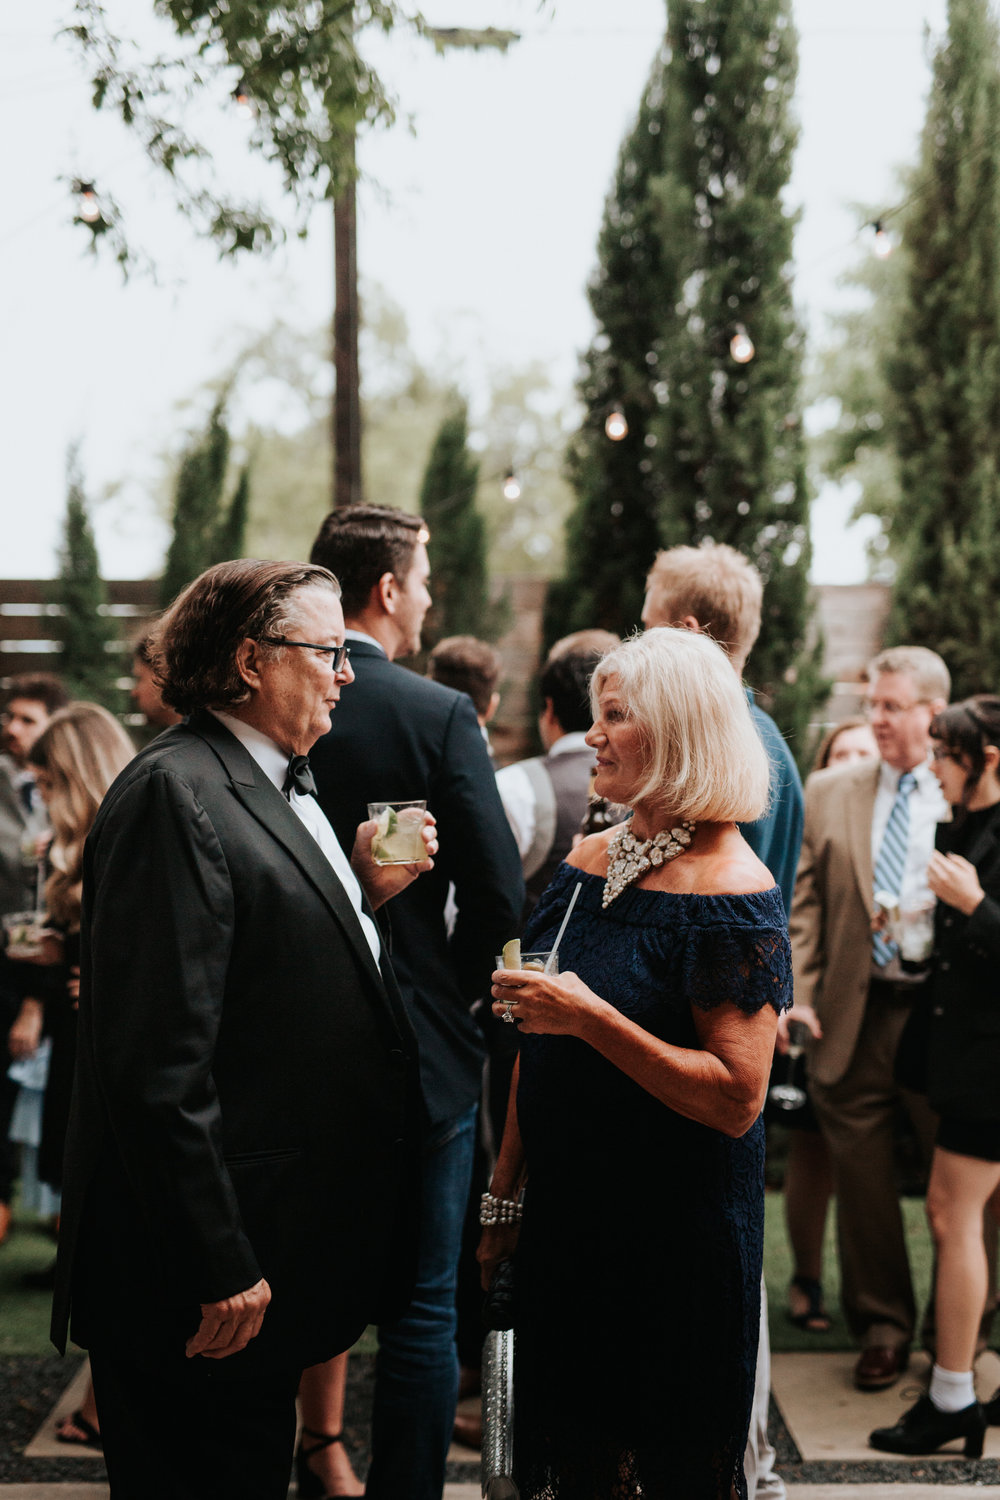 Guests at One Eleven East wedding